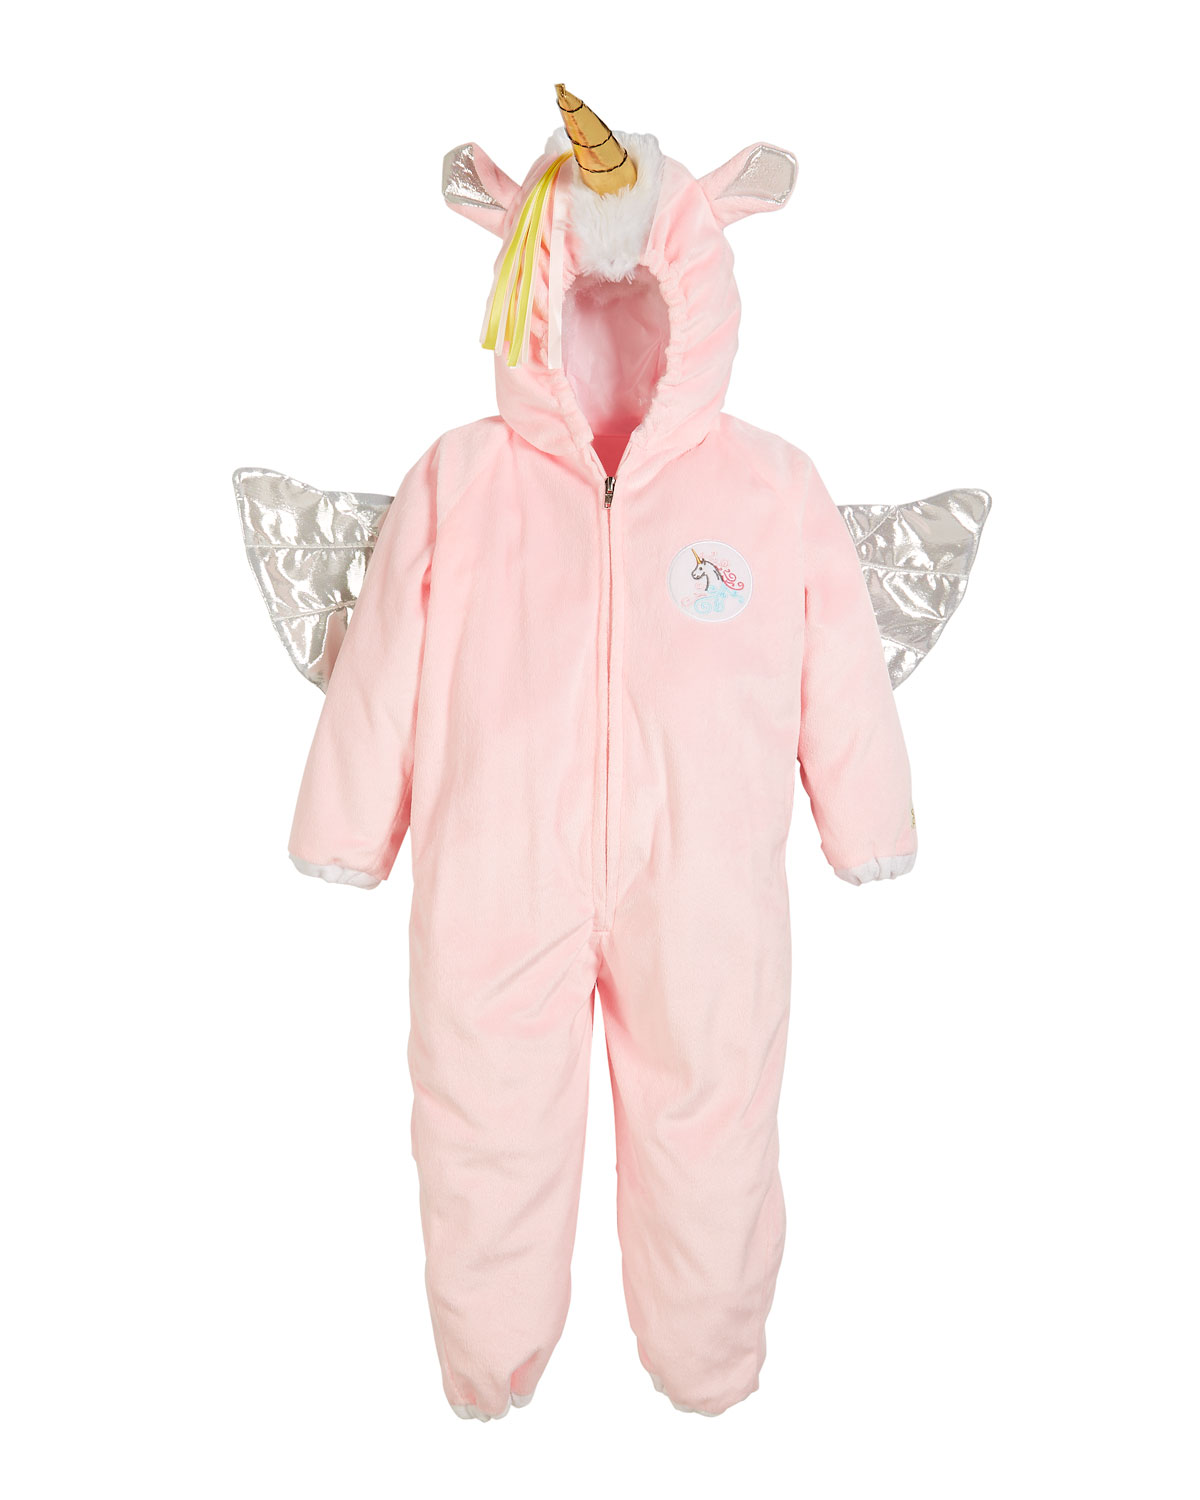 Kids Unicorn Jumpsuit Costume 34 Years